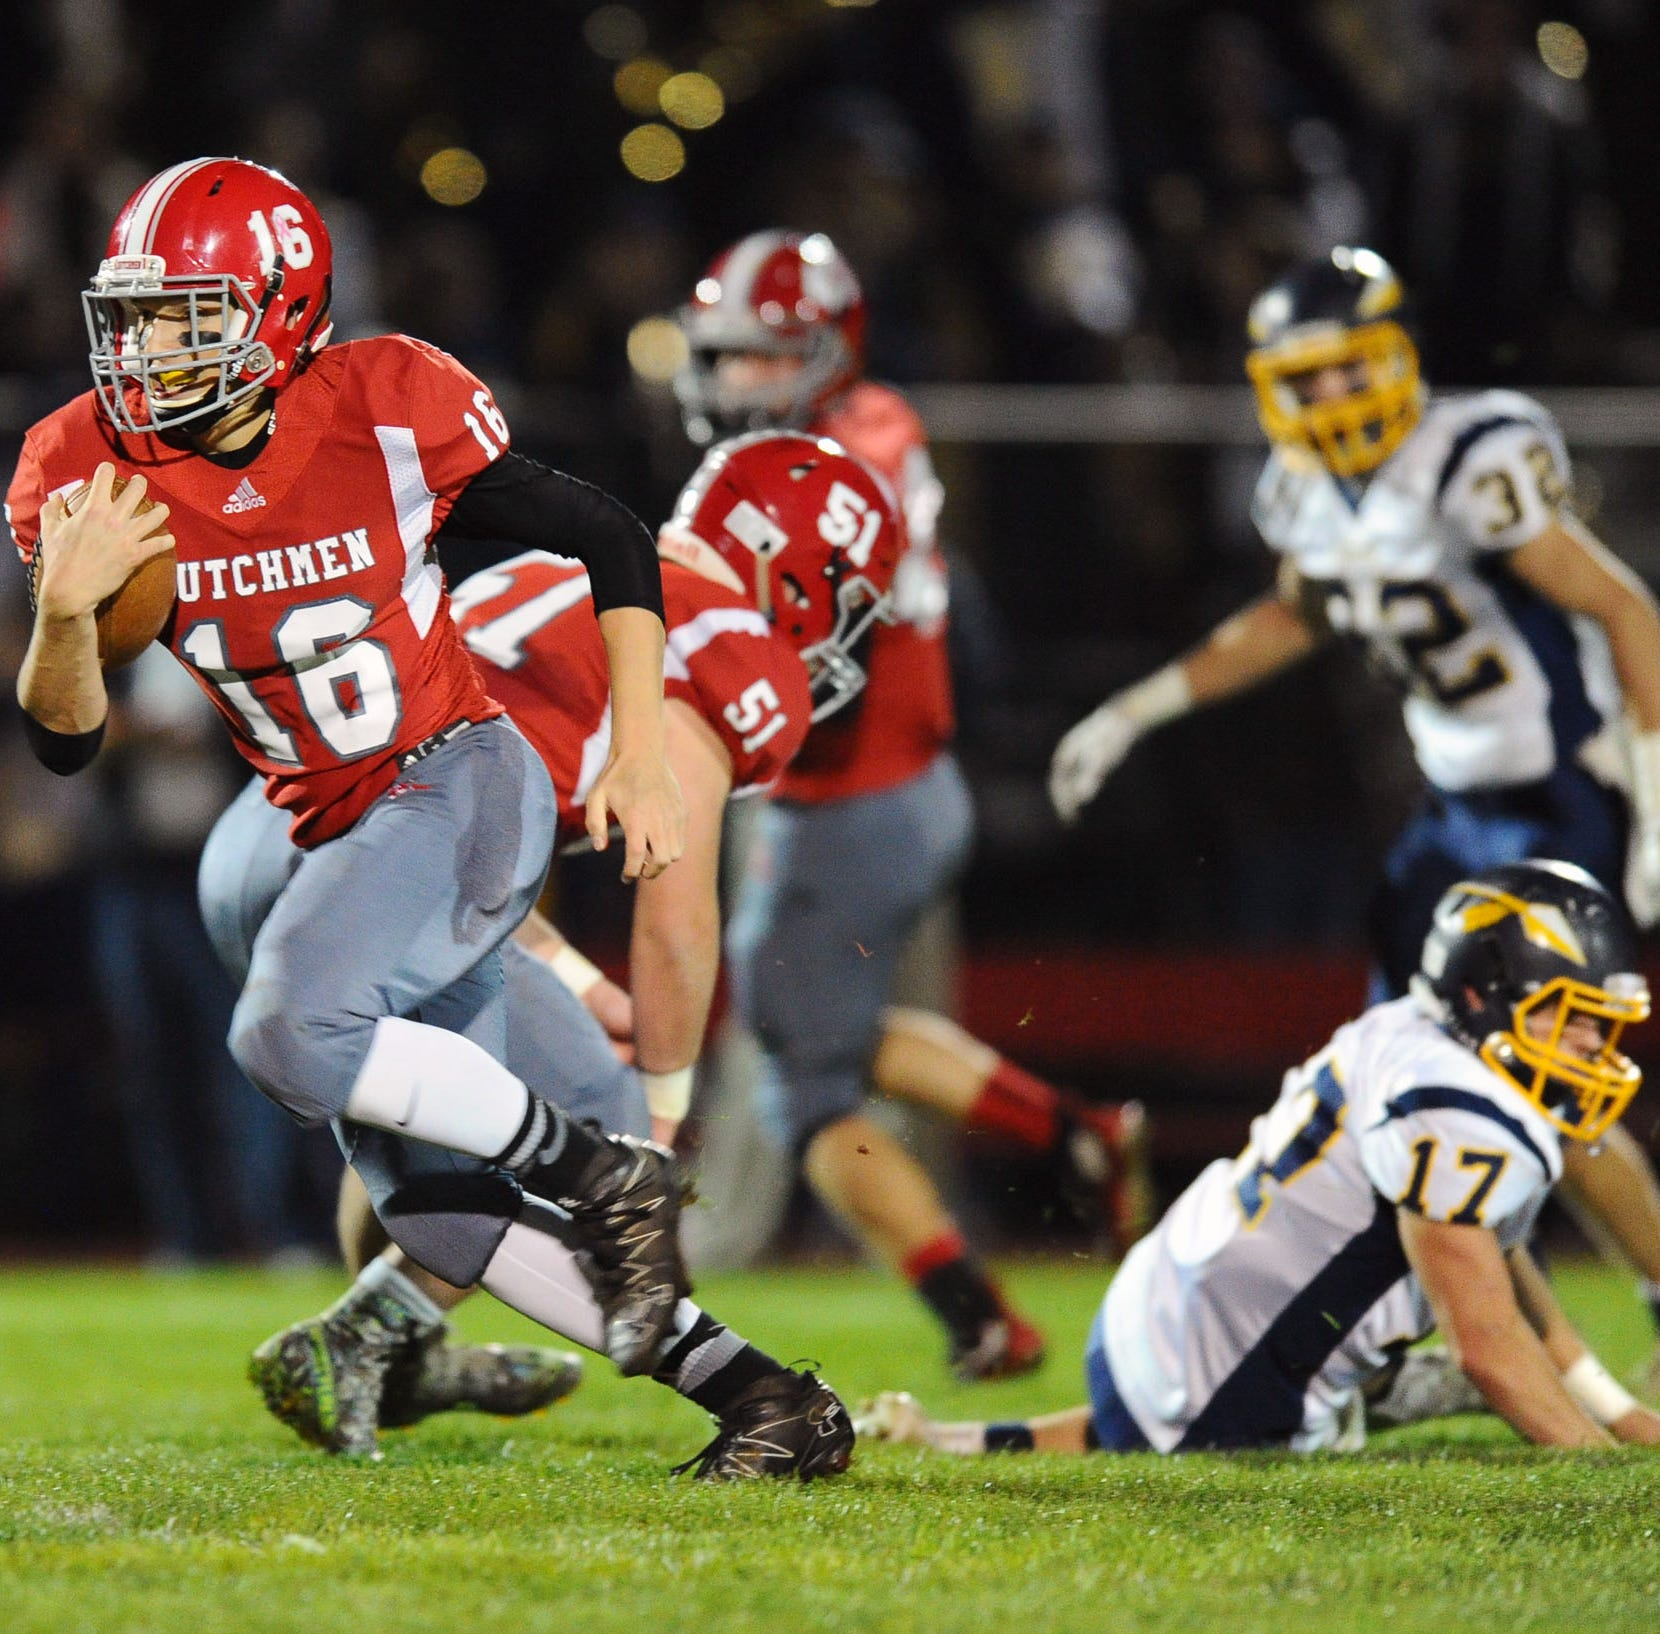 Annville-Cleona rediscovers mojo, picks up critical football win over rival Elco